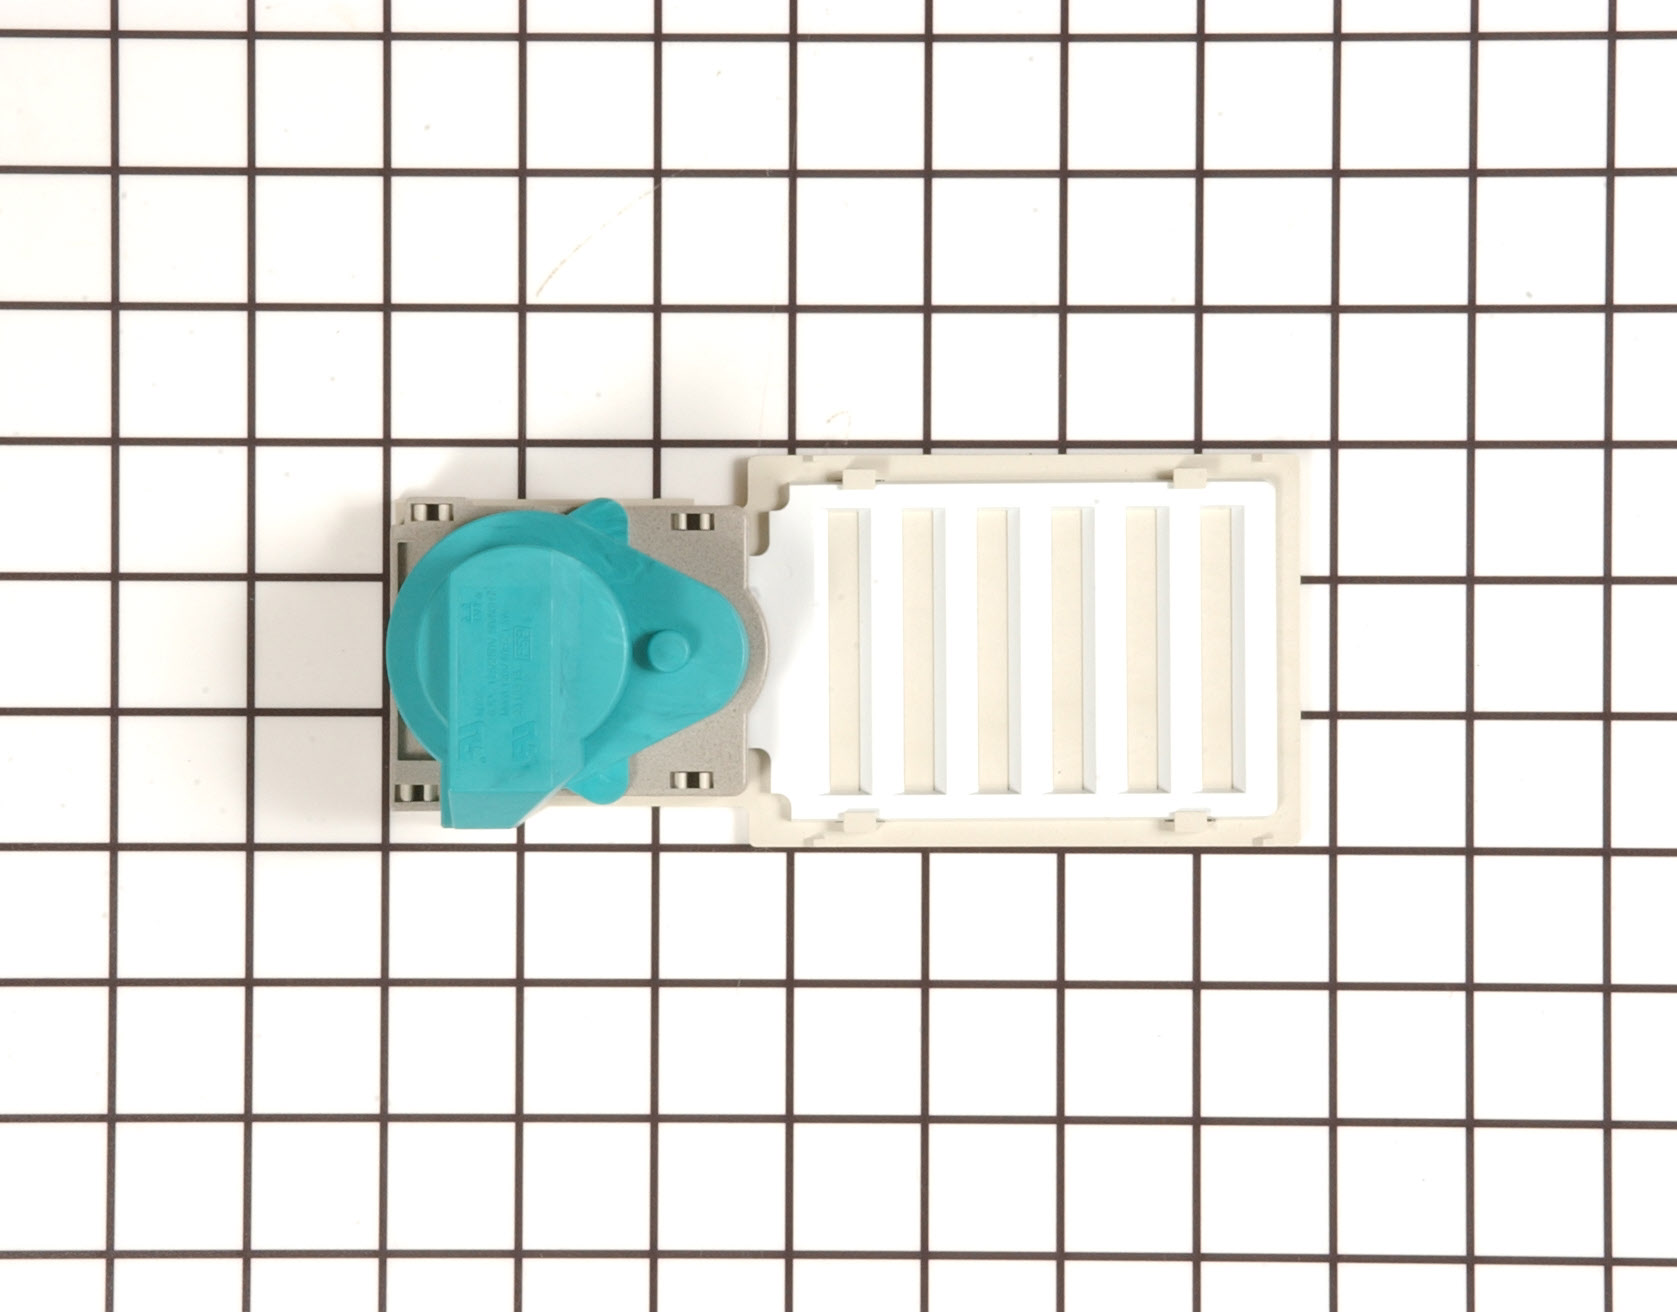 Kenmore Refrigerator Part # WP2315515 - Damper Control Assembly